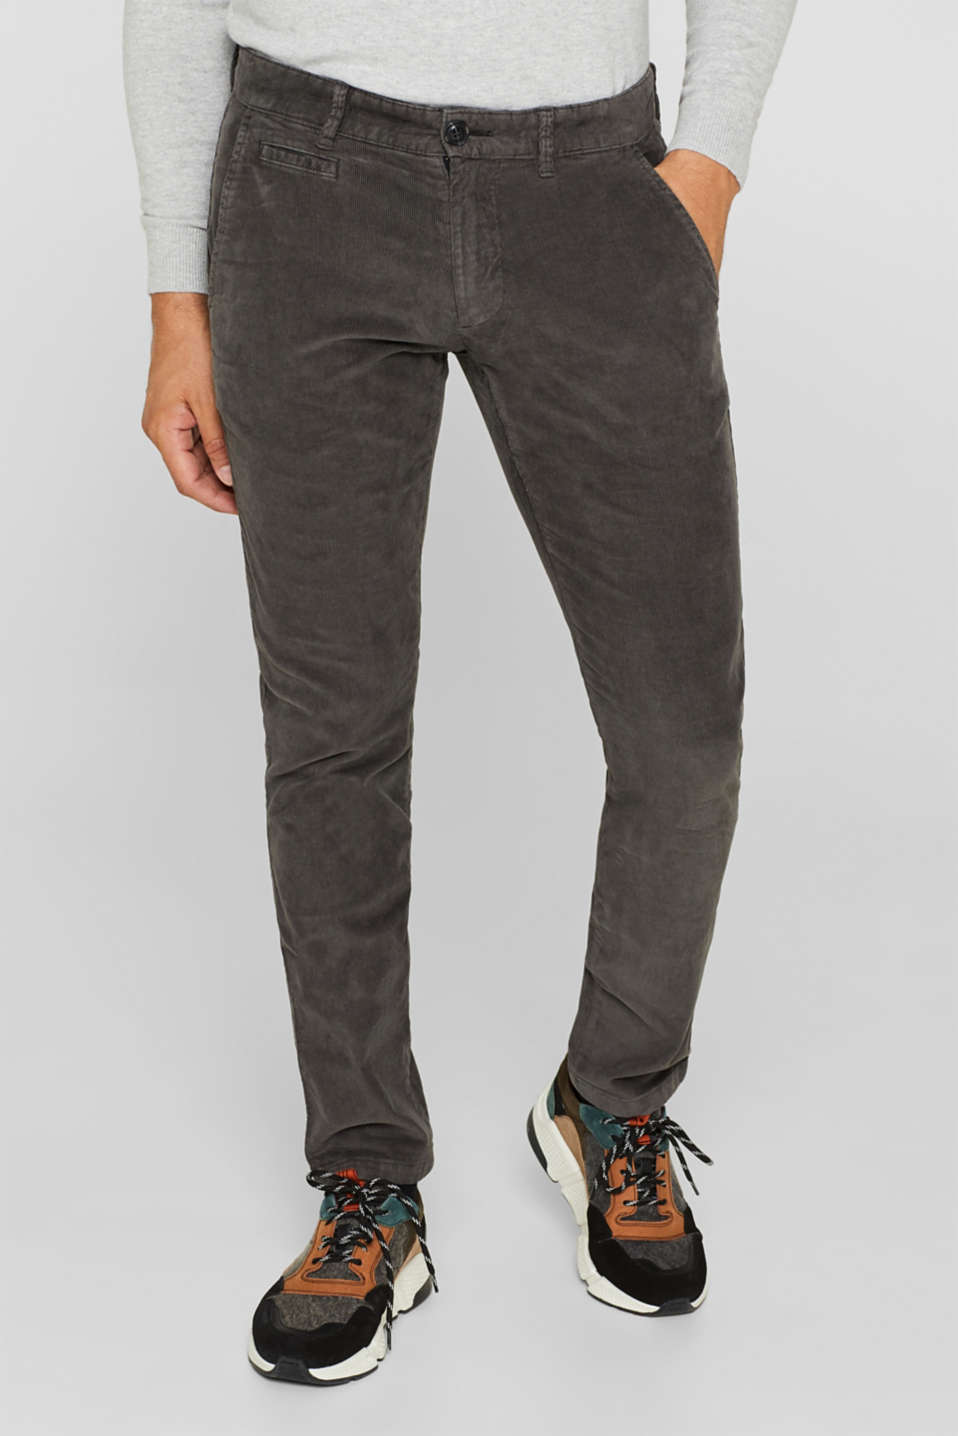 Esprit - Corduroy trousers made of 100% cotton